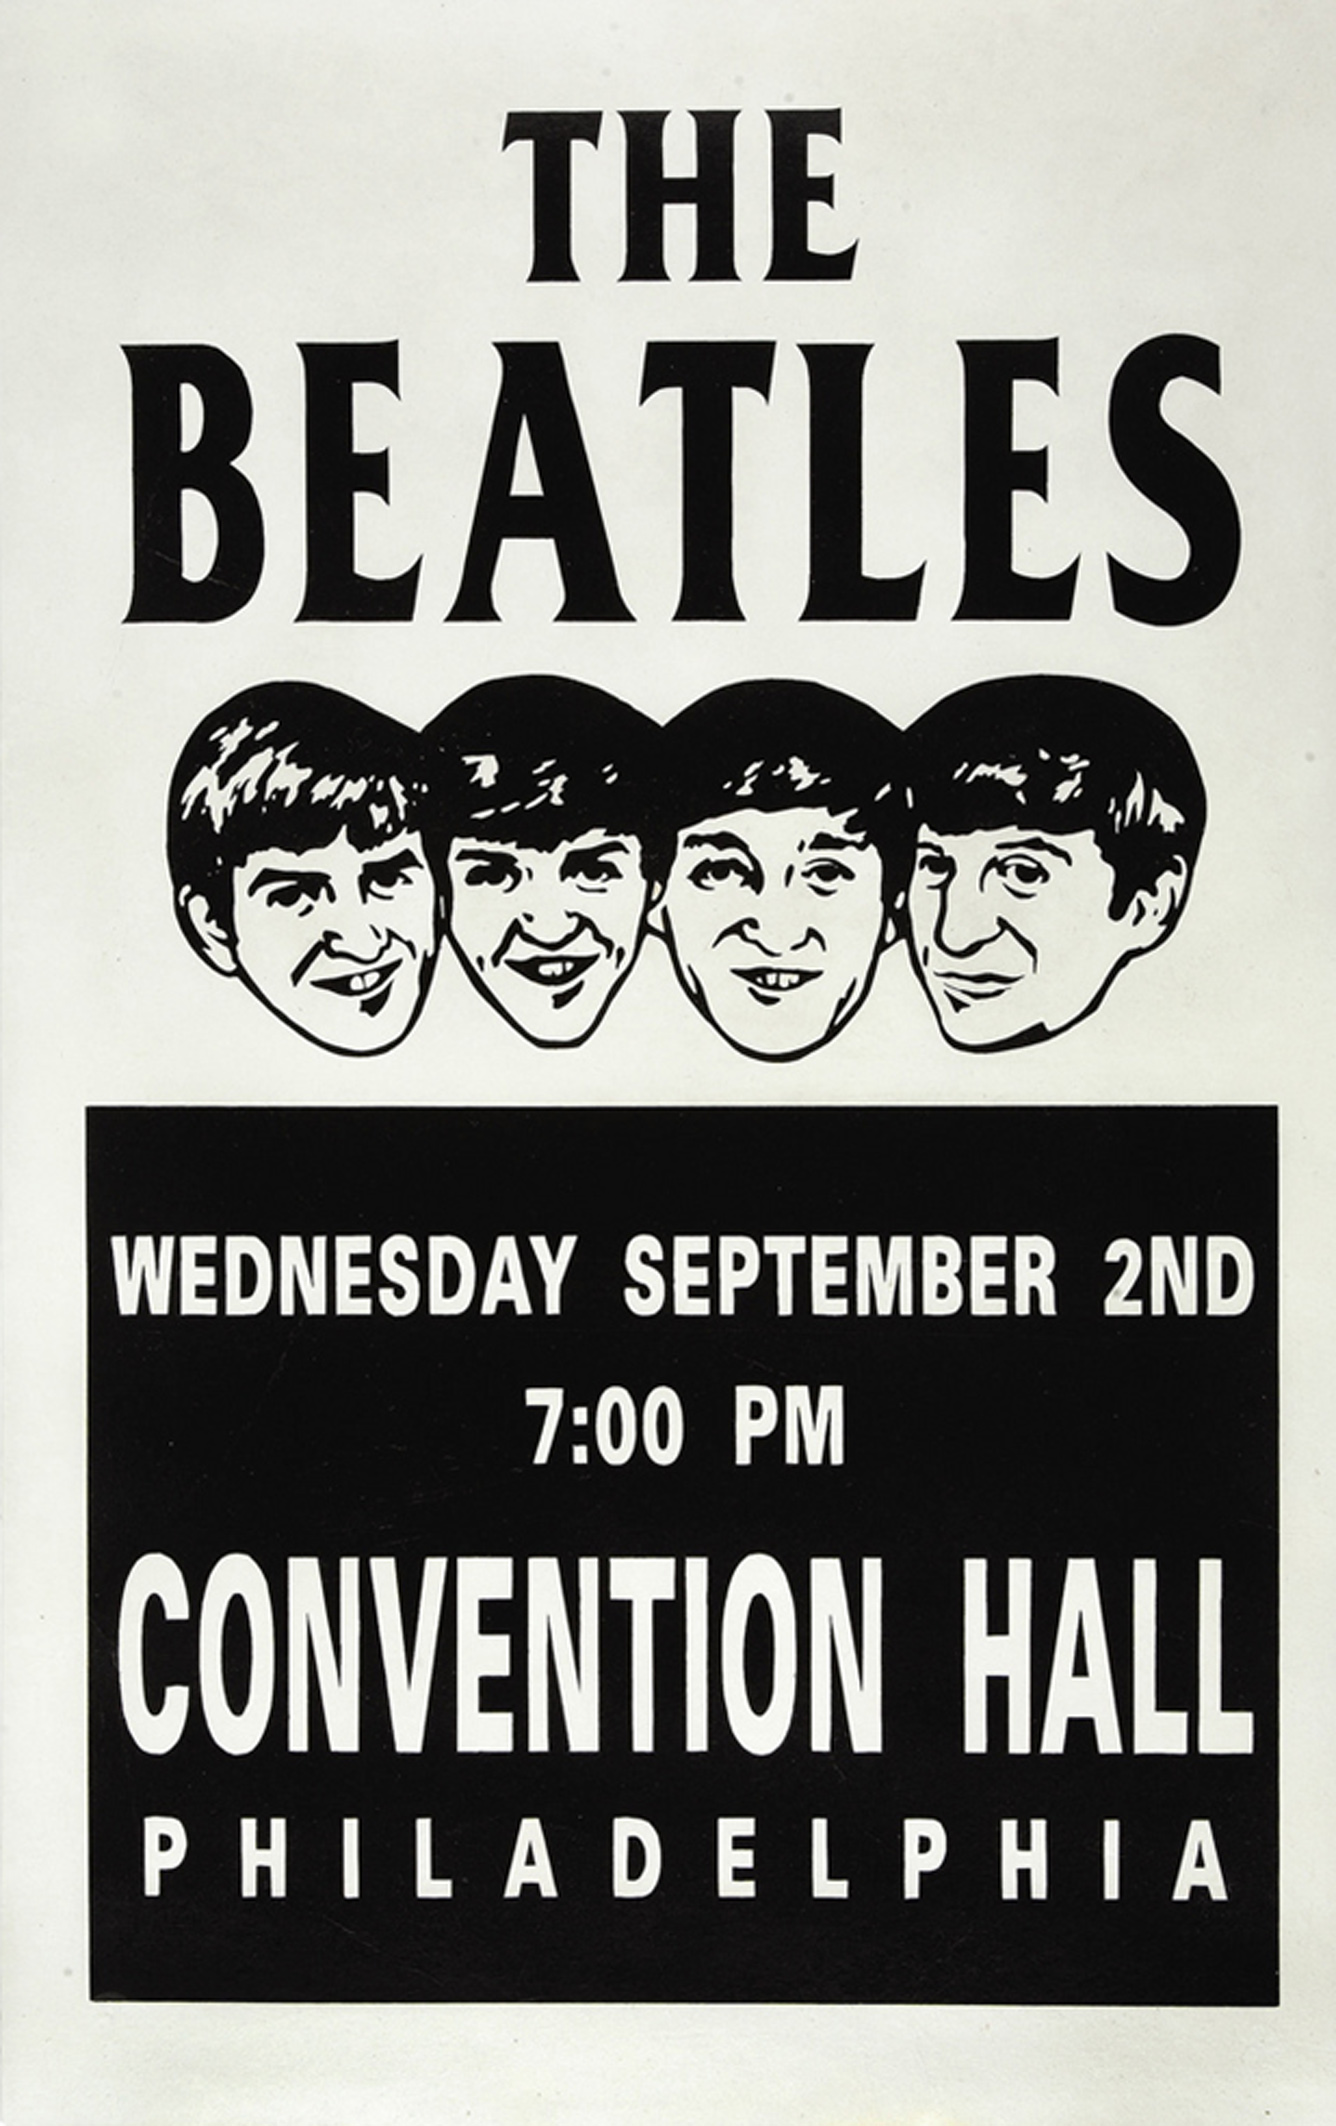 The Beatles Philadelphia Convention Center Concert Poster 1964